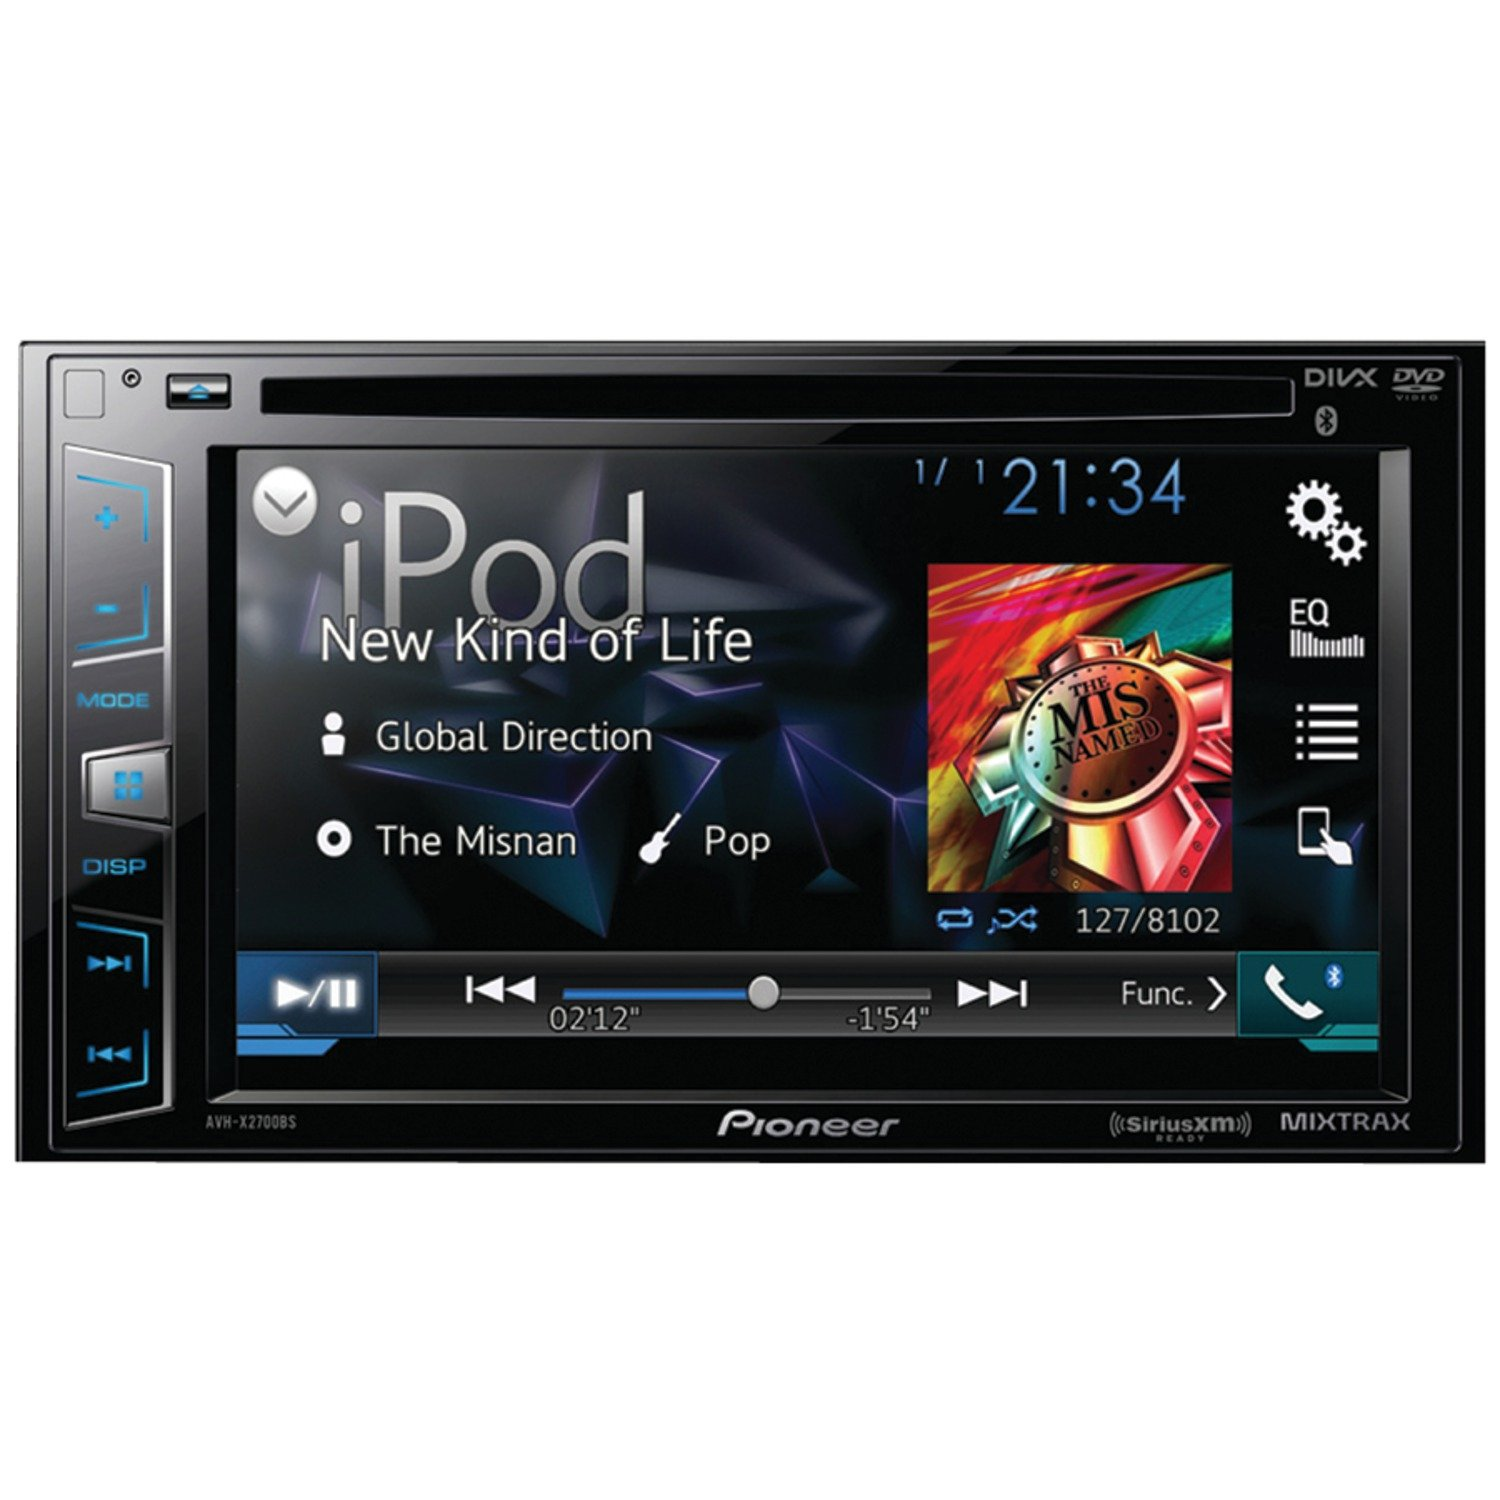 71IQPcOY7RL._SL1500_ amazon com pioneer avhx2700bs double din bluetooth sirius dvd  at mifinder.co